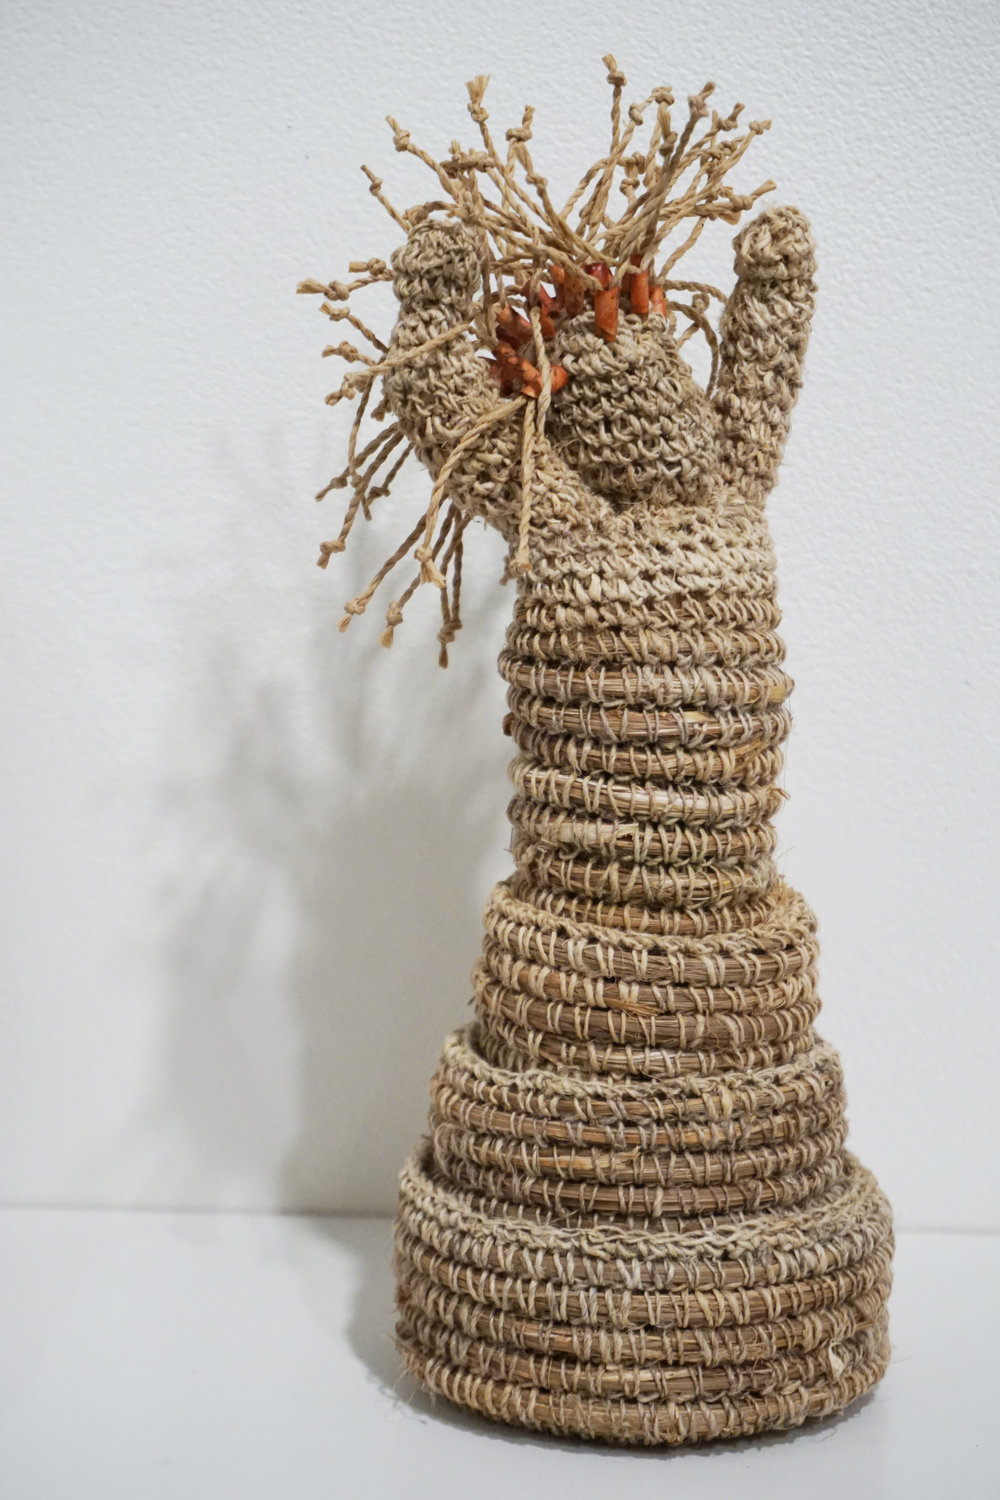 25. Anne Williams,  Becoming , Cordyline, hemp, paper, set of 4 stacking forms $150